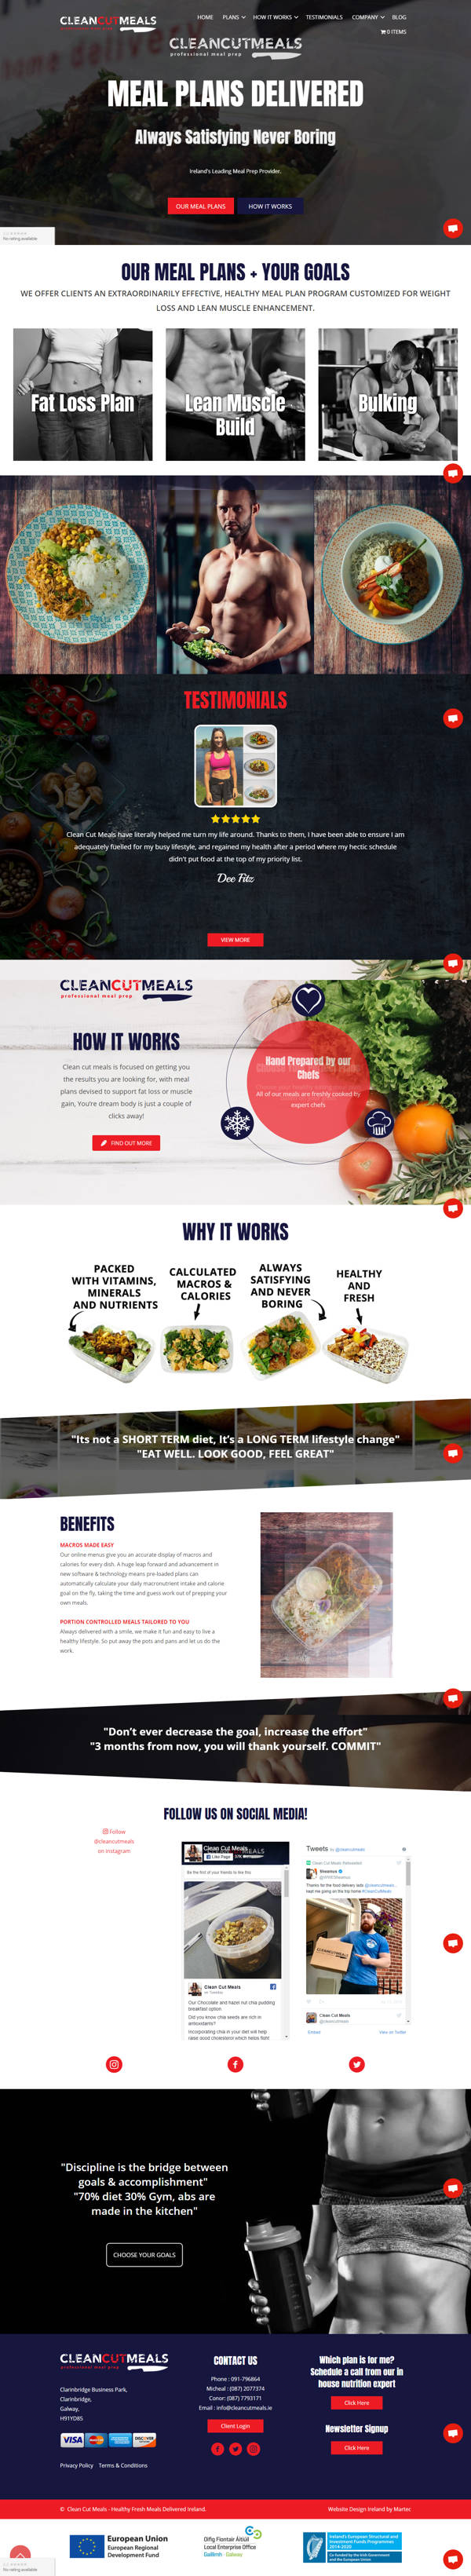 Clean Cut Meals – Healthy Fresh Meals Delivered Ireland